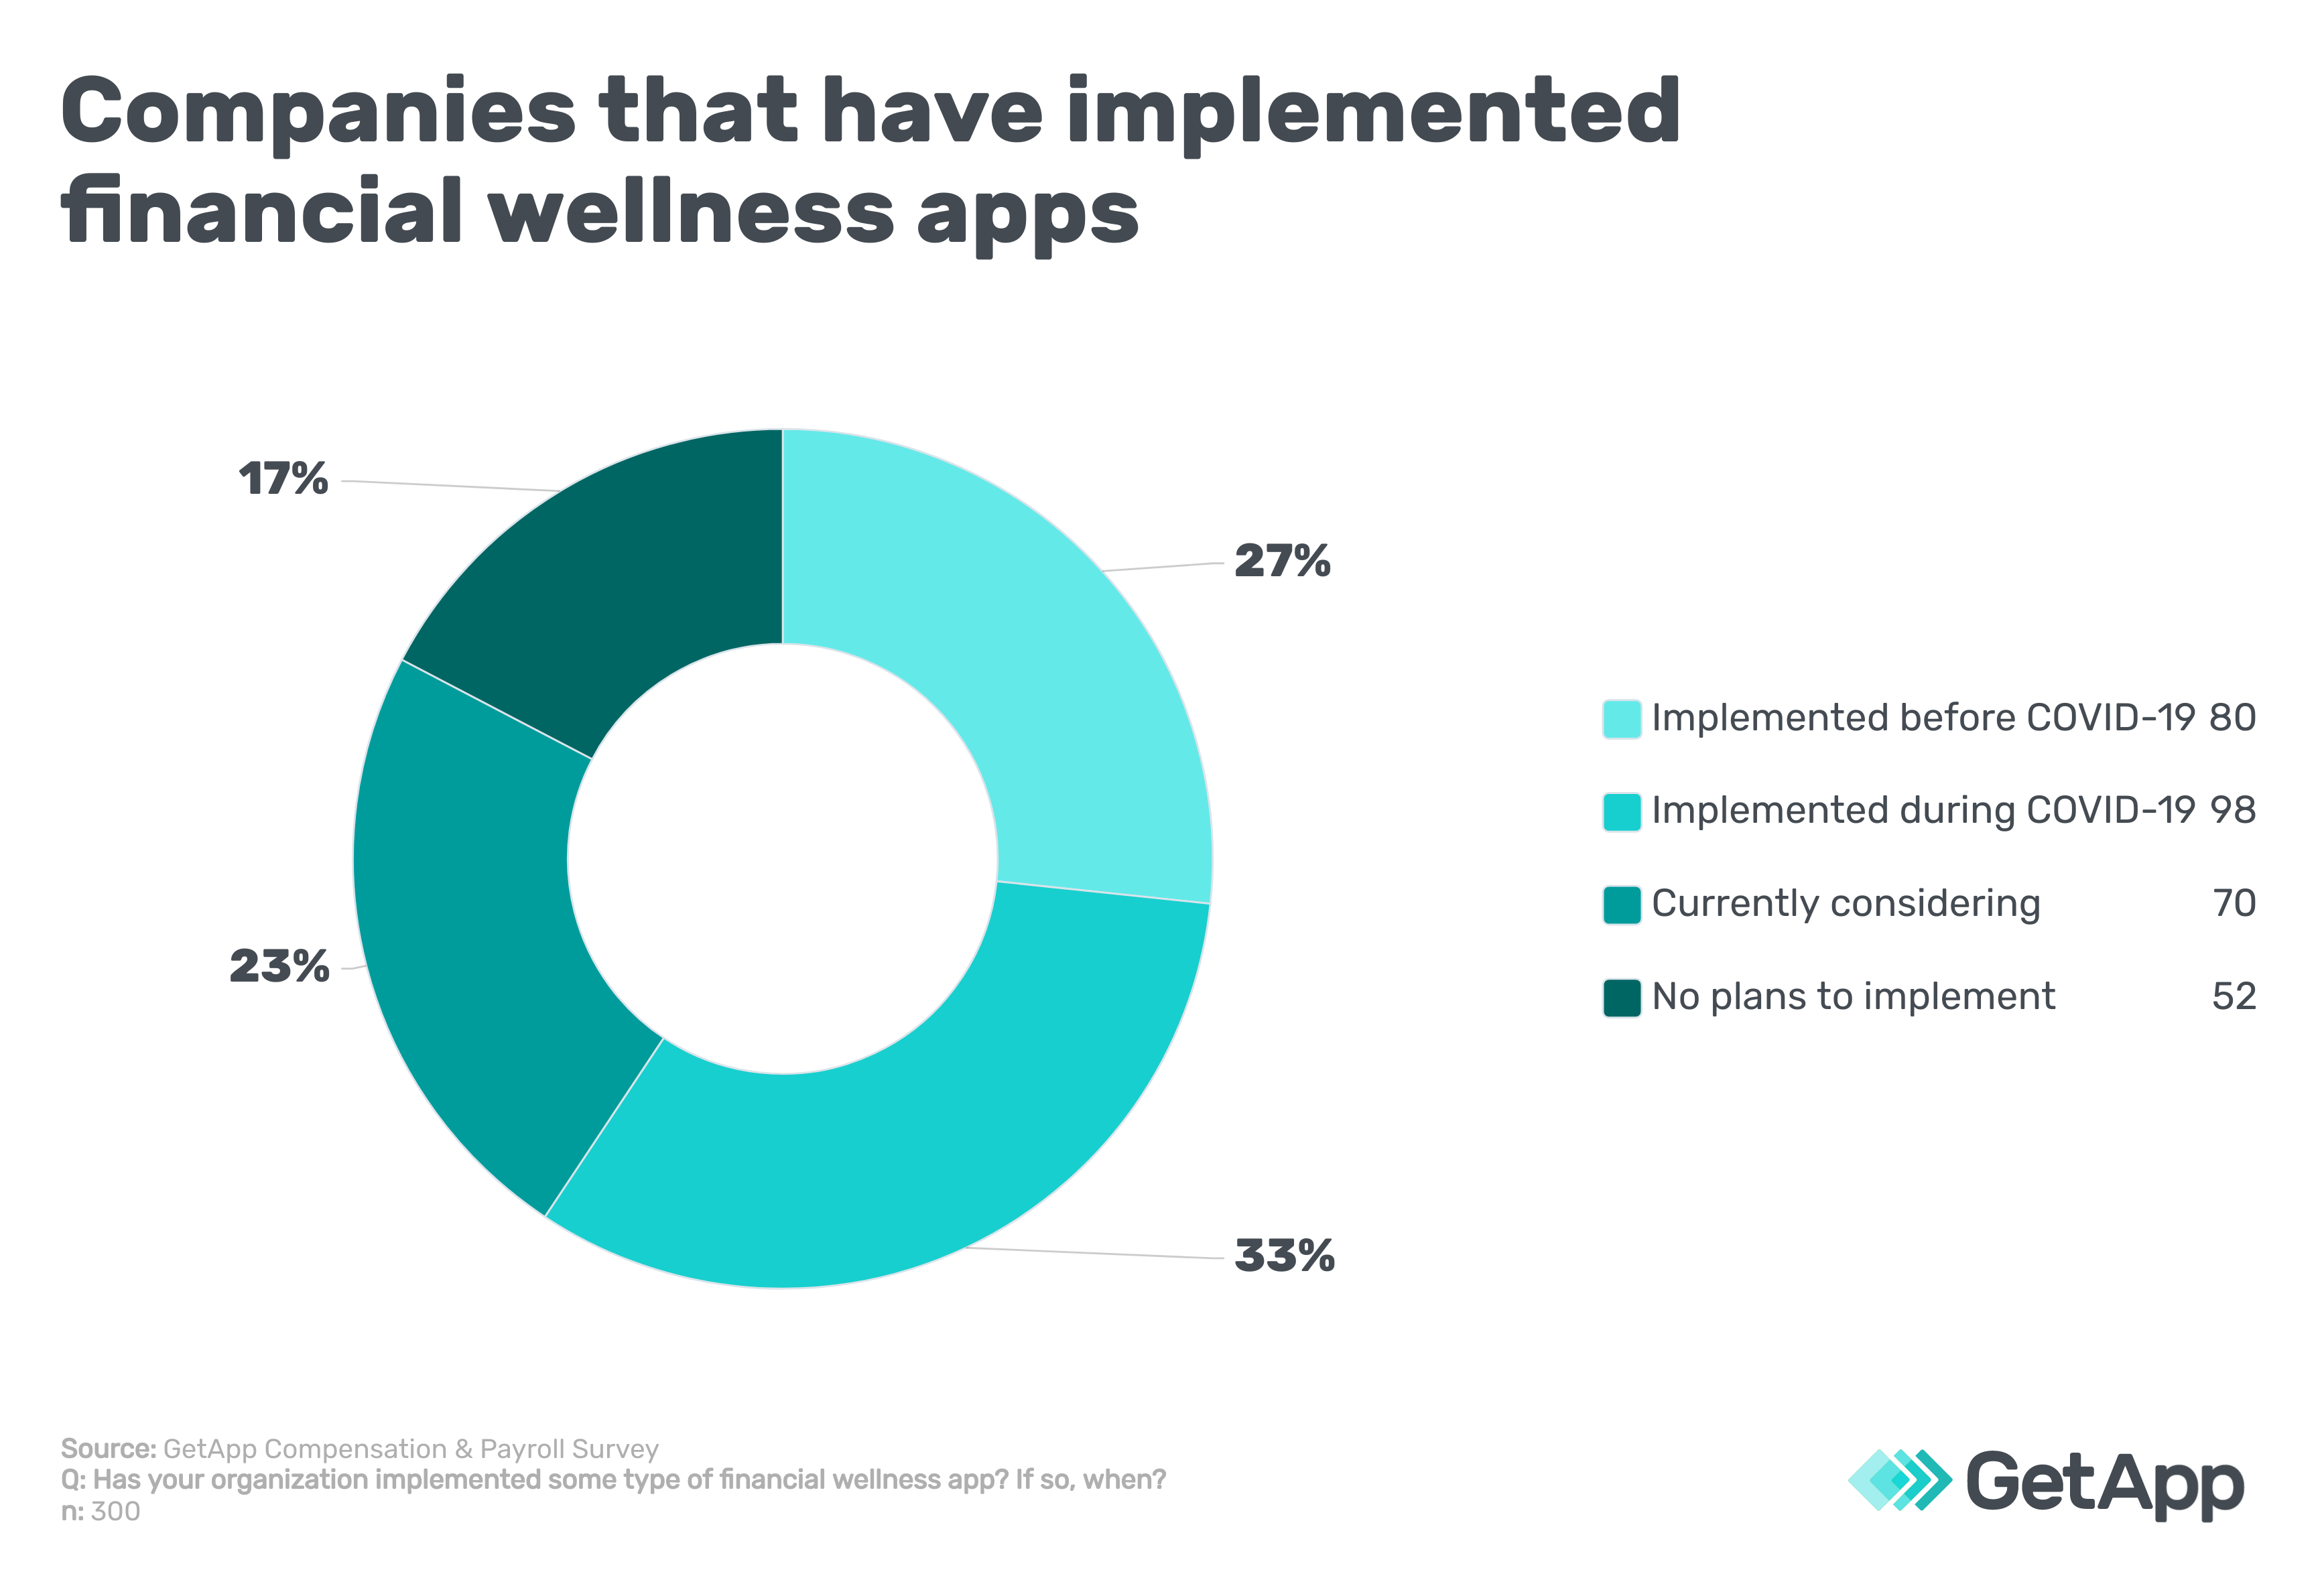 Companies that have implemented financial wellness apps